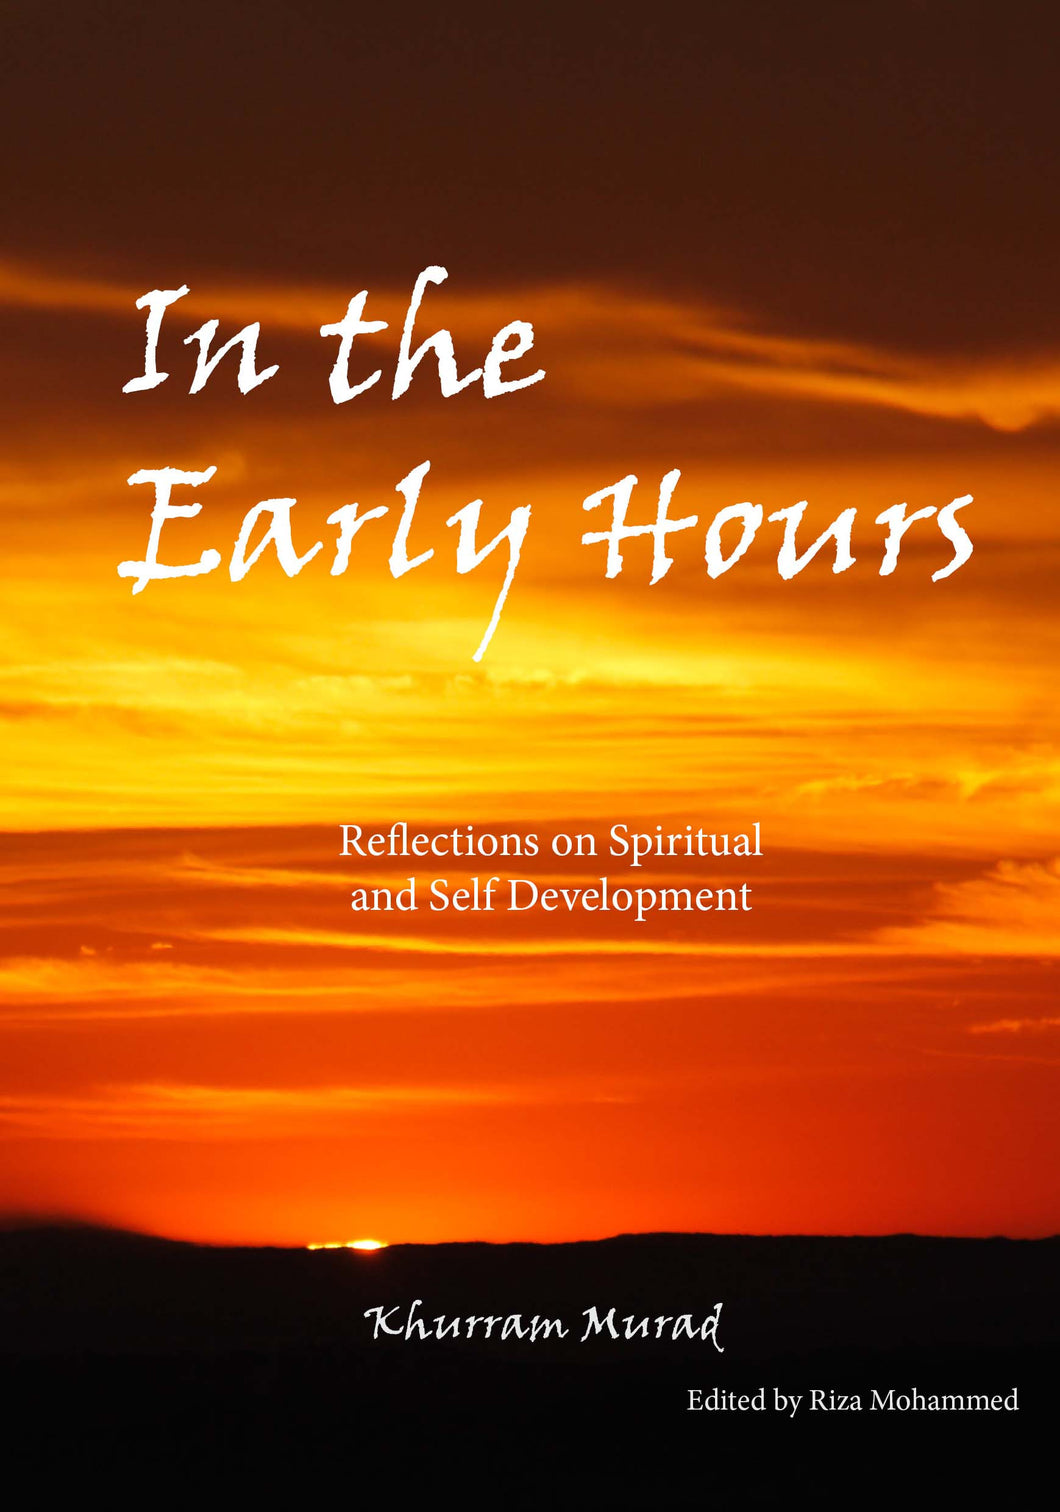 In The Early Hours by Khurram Murad - Baitul Hikmah